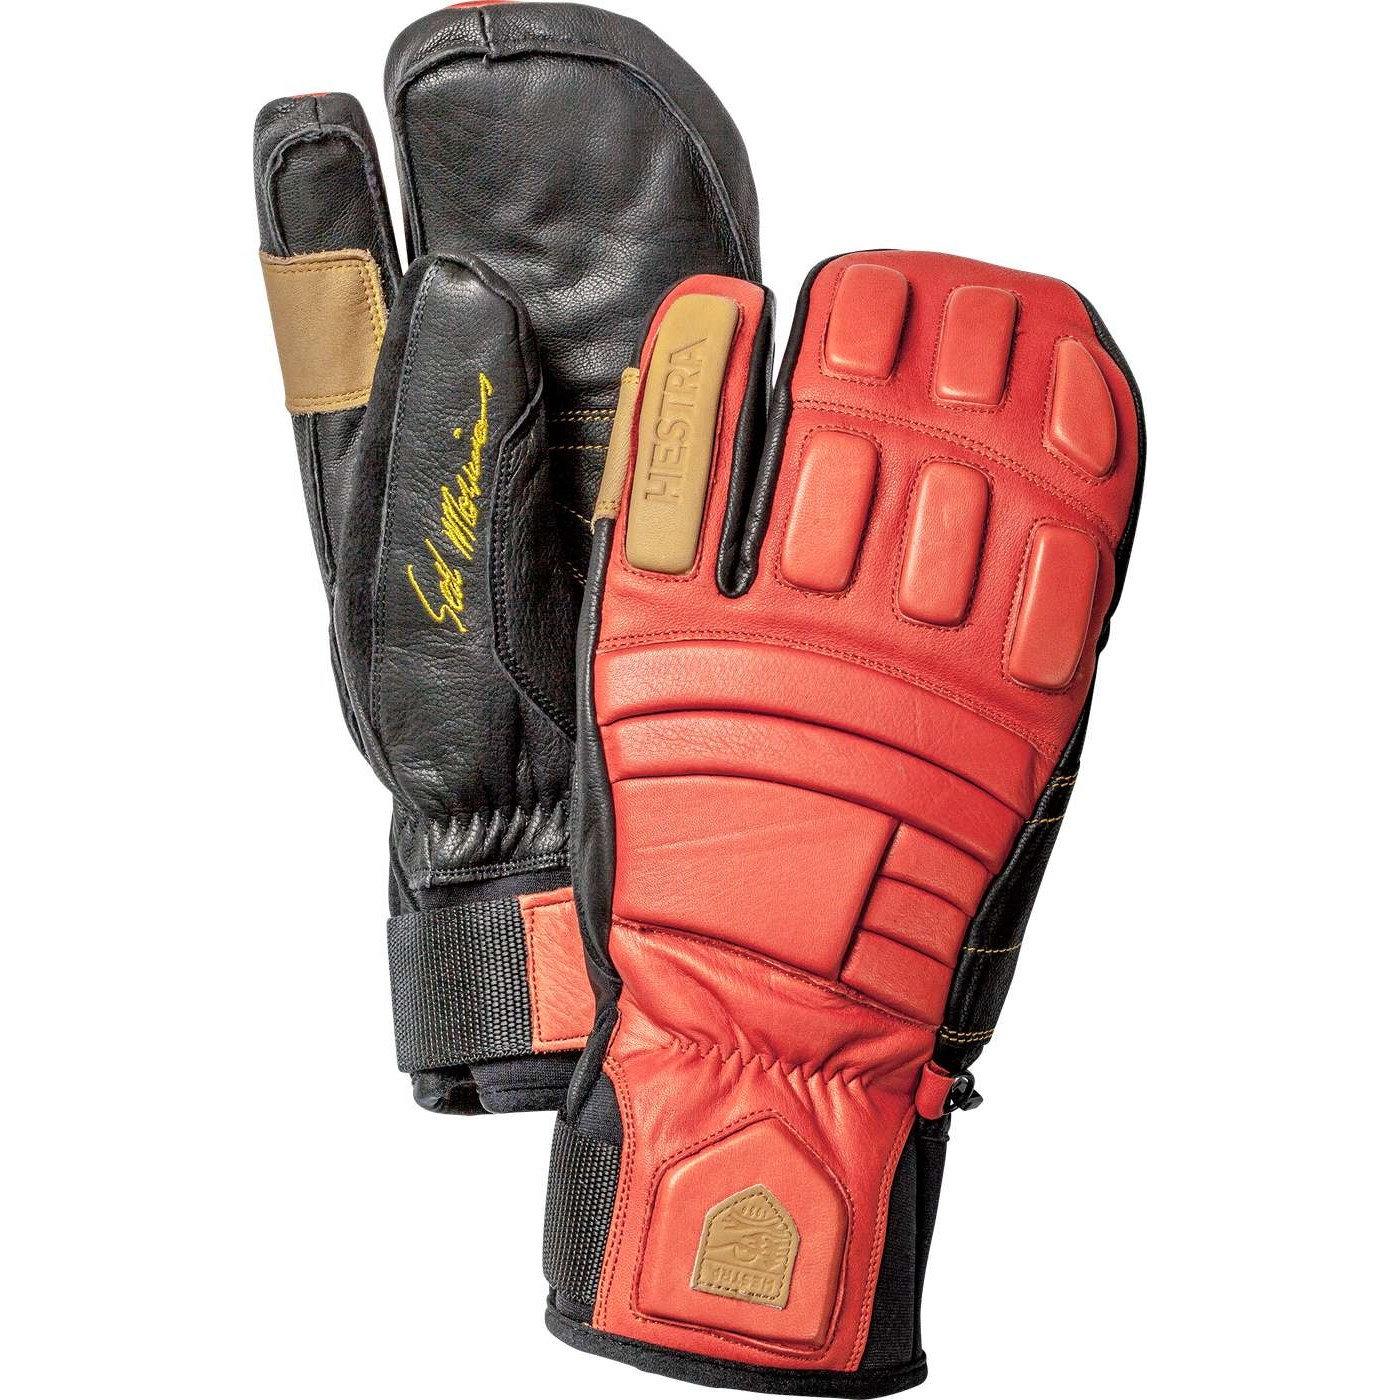 Hestra mens gloves - Hestra Mens Gloves 20